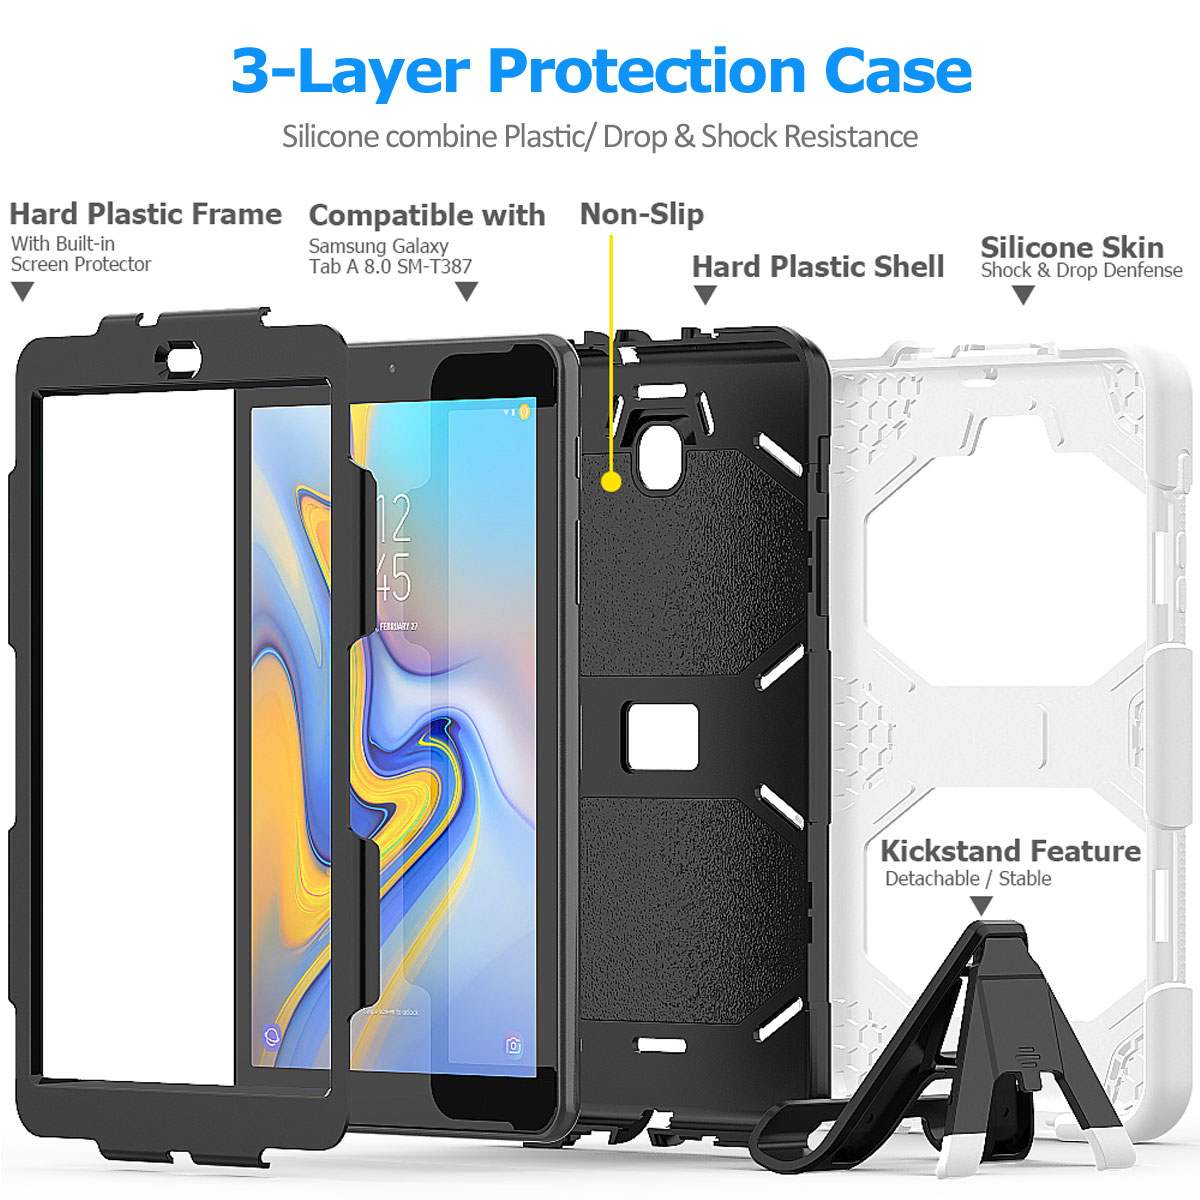 Rugged-Hard-Case-For-Samsung-Galaxy-Tab-A-8-0-2018-SM-T387-with-Screen-Protector thumbnail 35